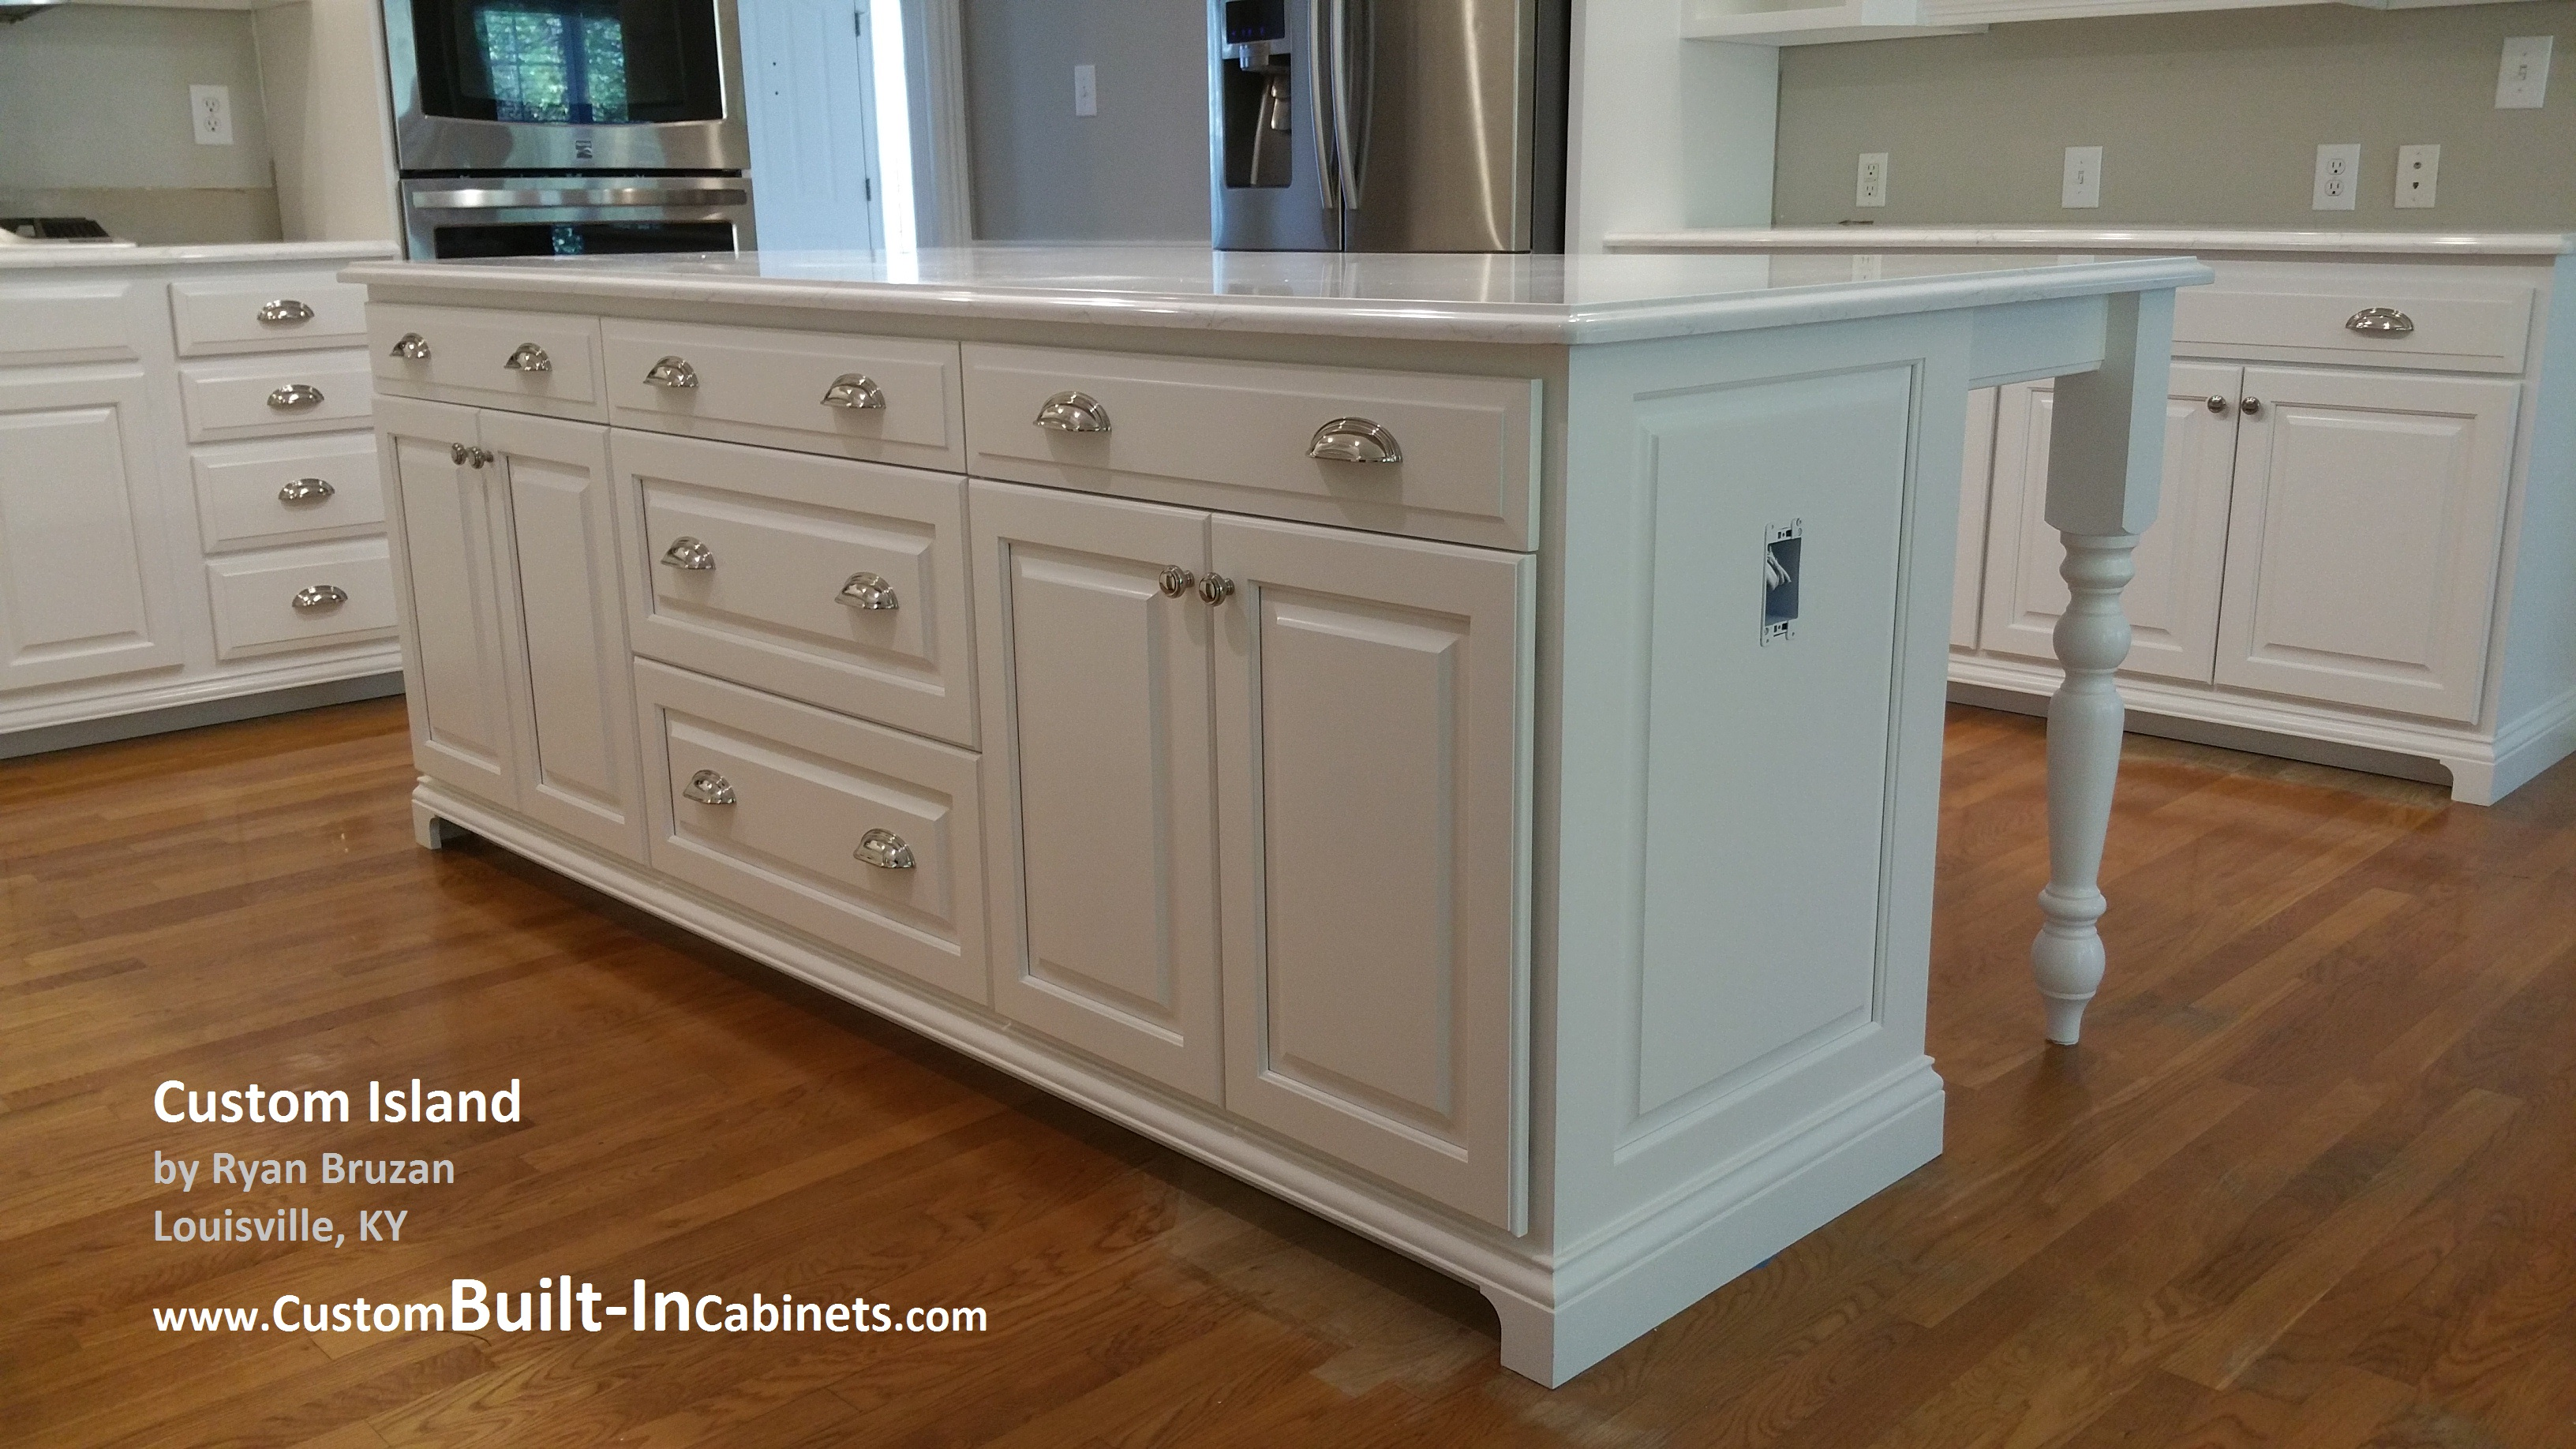 Custom built in cabinet services around louisville ky for Custom made kitchens